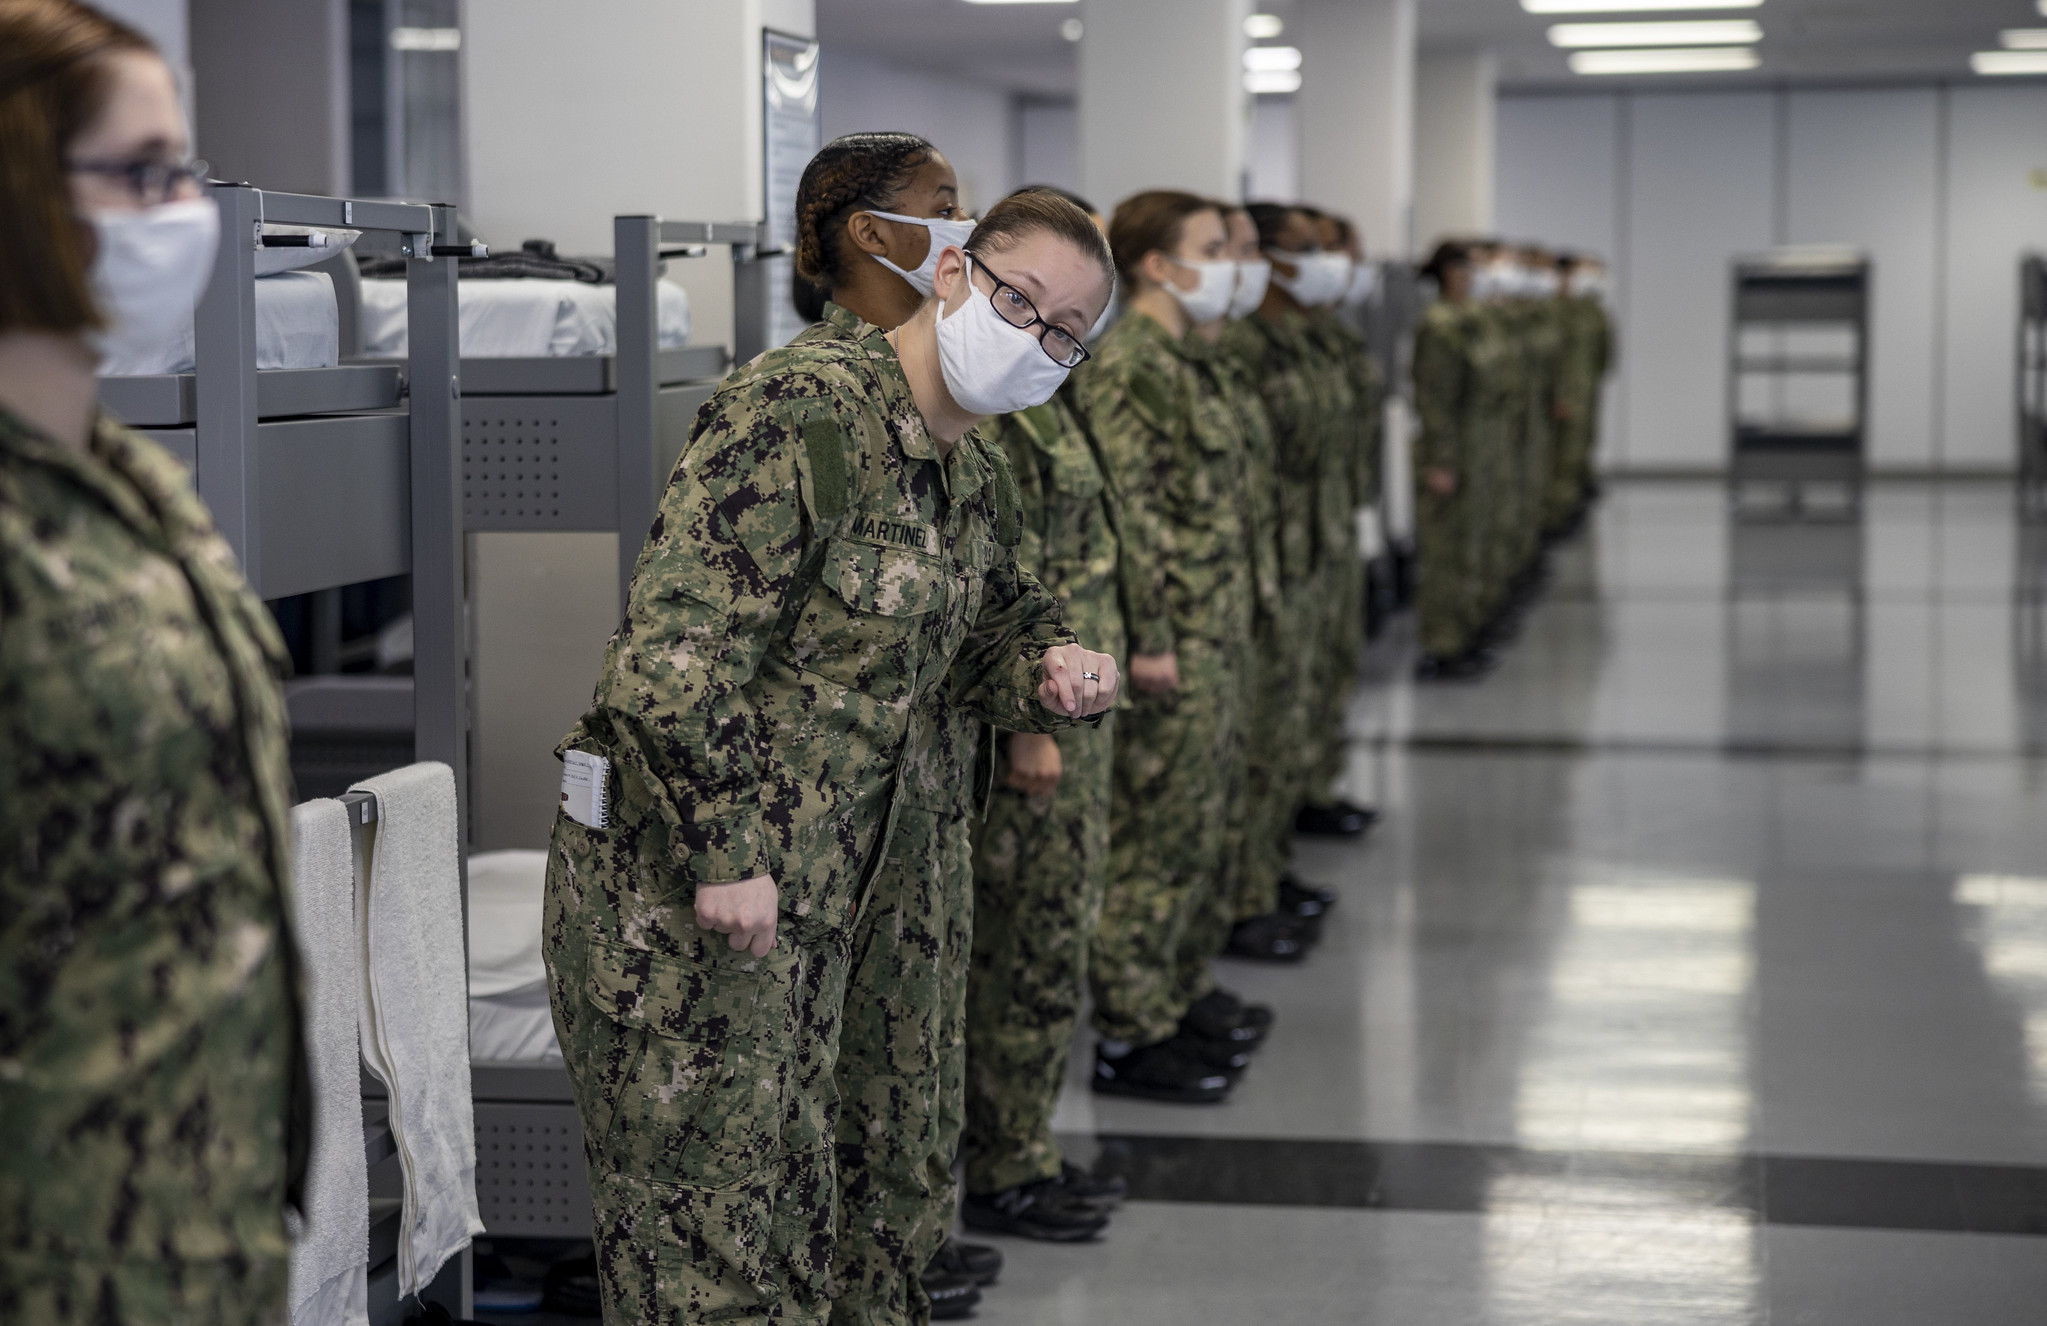 Seaman recruit Shanda Martinez, a recruit chief petty officer, checks to see if her division is ready for their first task during a dynamic material inspection Dec. 21, 2020, at Recruit Training Command at Great Lakes, Ill. (MC1 Camilo Fernan/Navy)